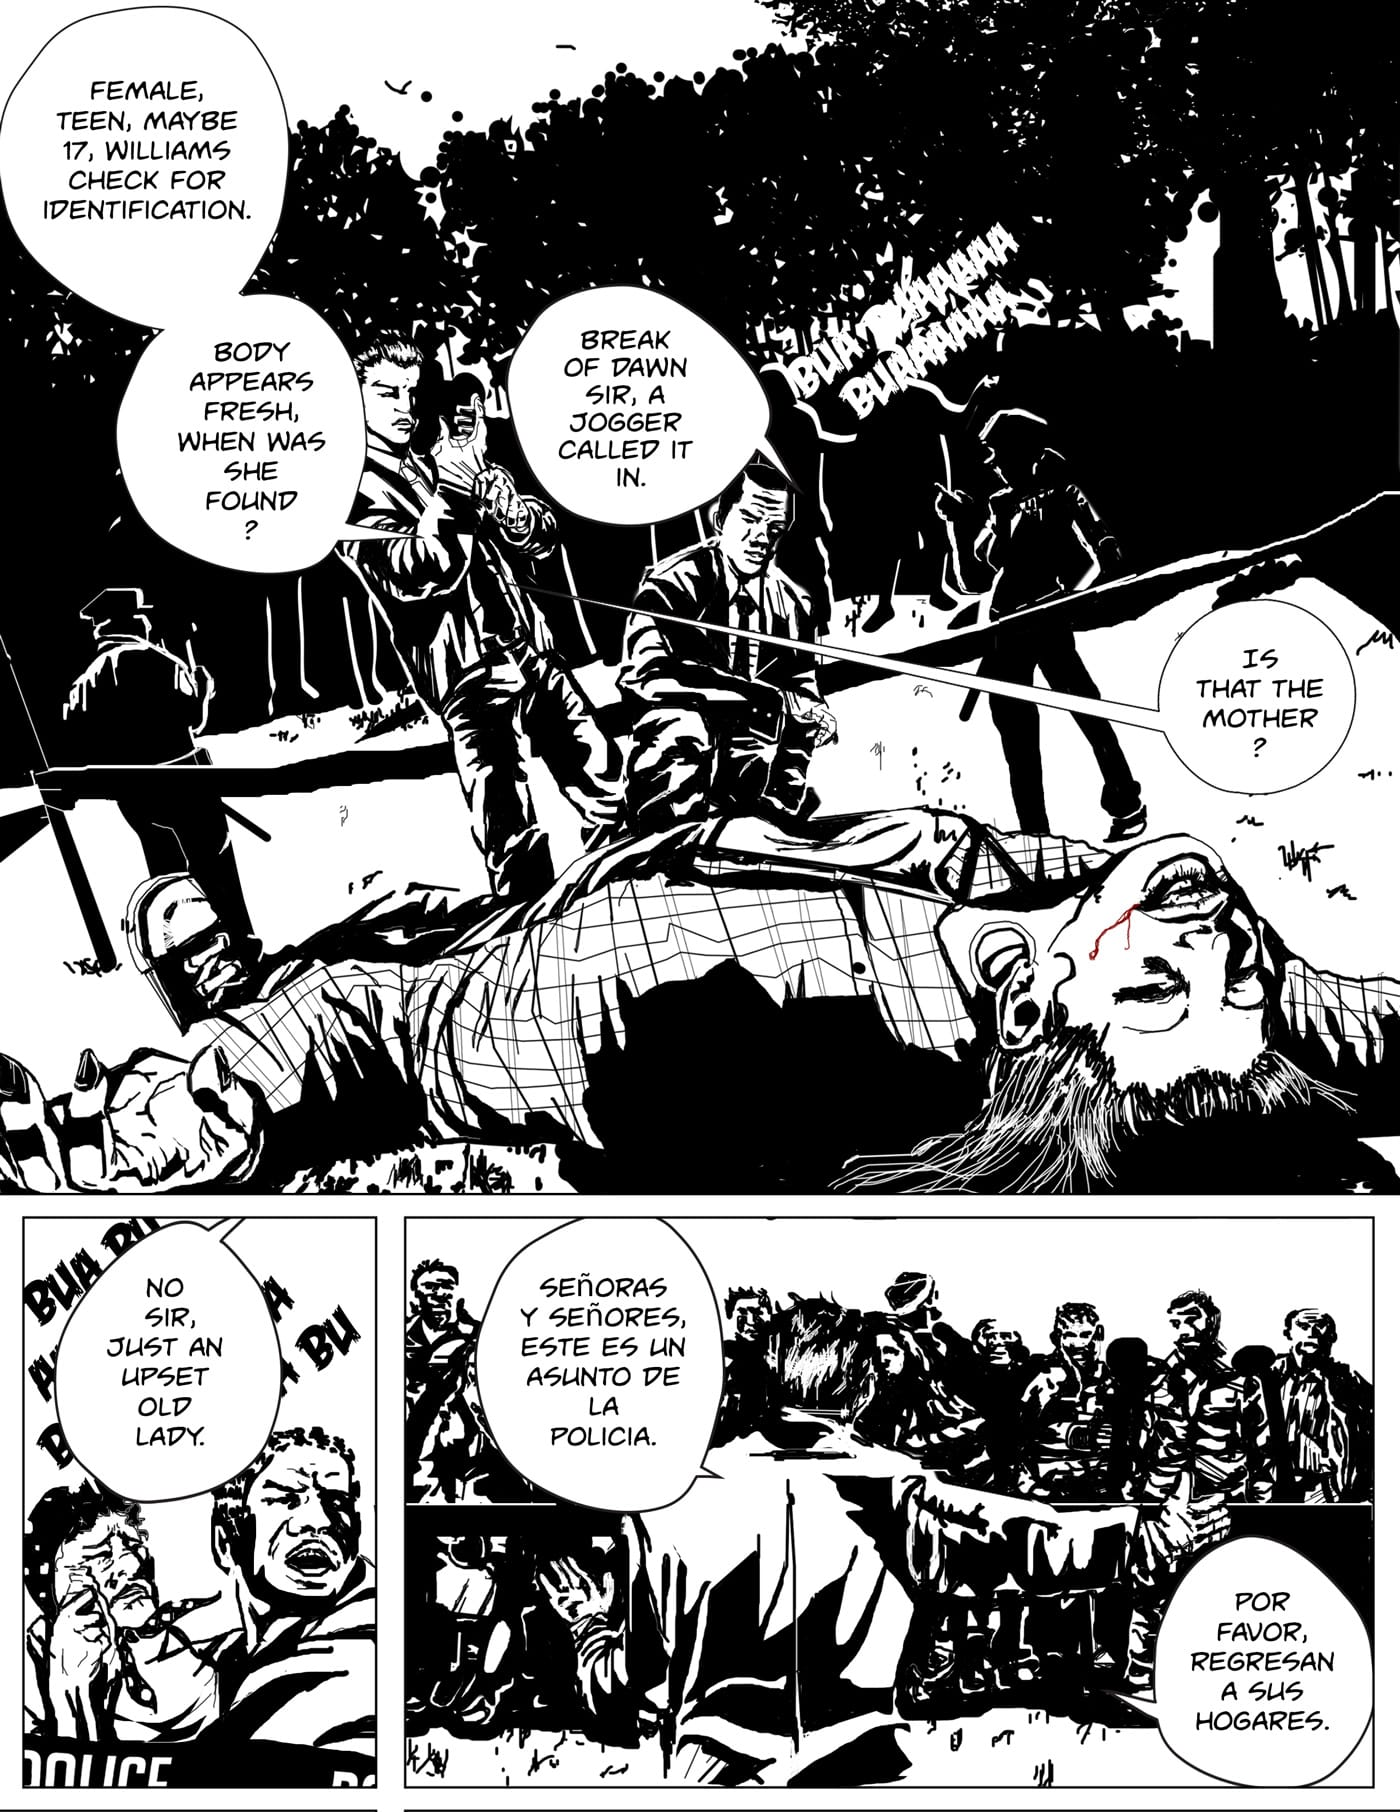 Children of Kronos comic page four of chapter one Demeter, Romero walks up on a dead body with fellow detective and asks if the woman crying is the dead girls mother.